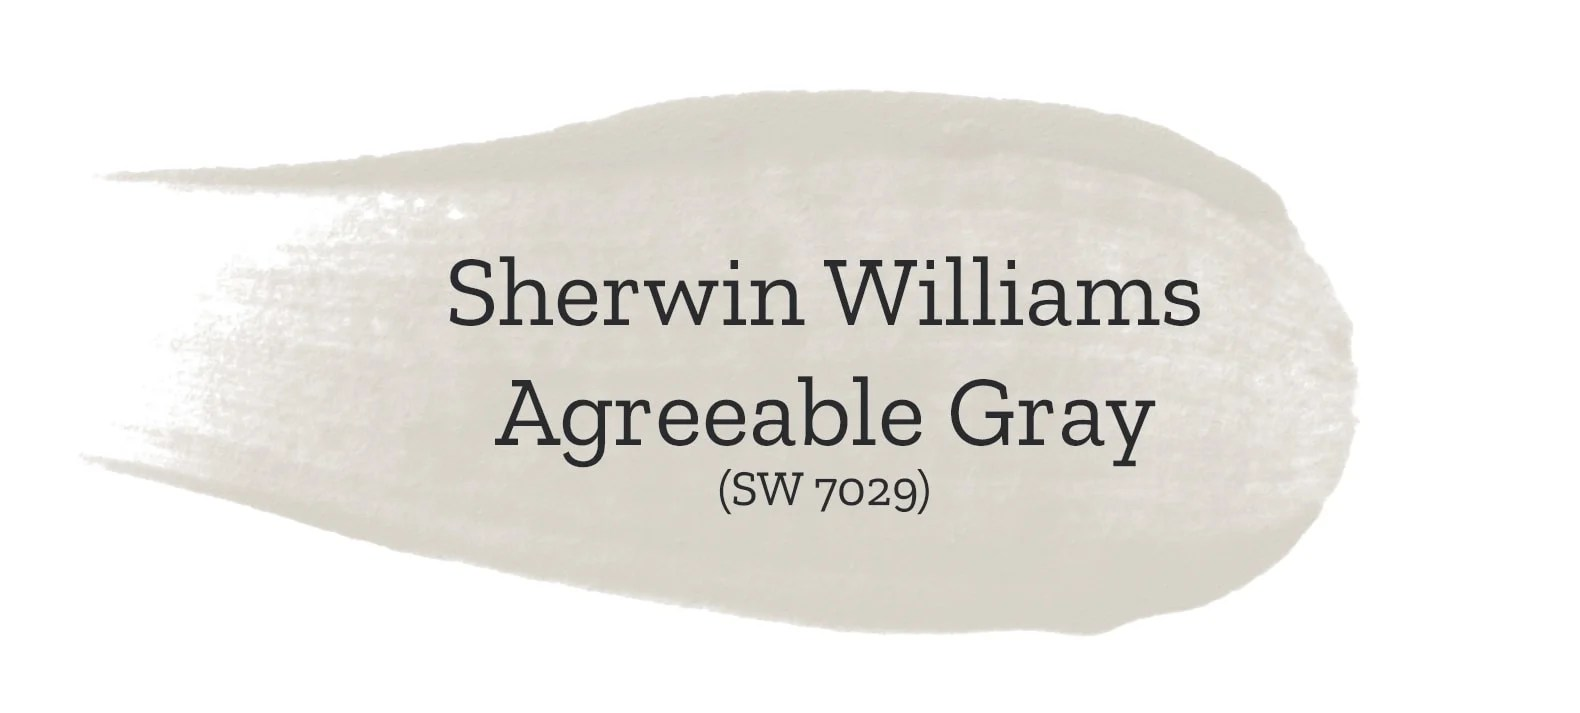 SW Agreeable Gray 7029